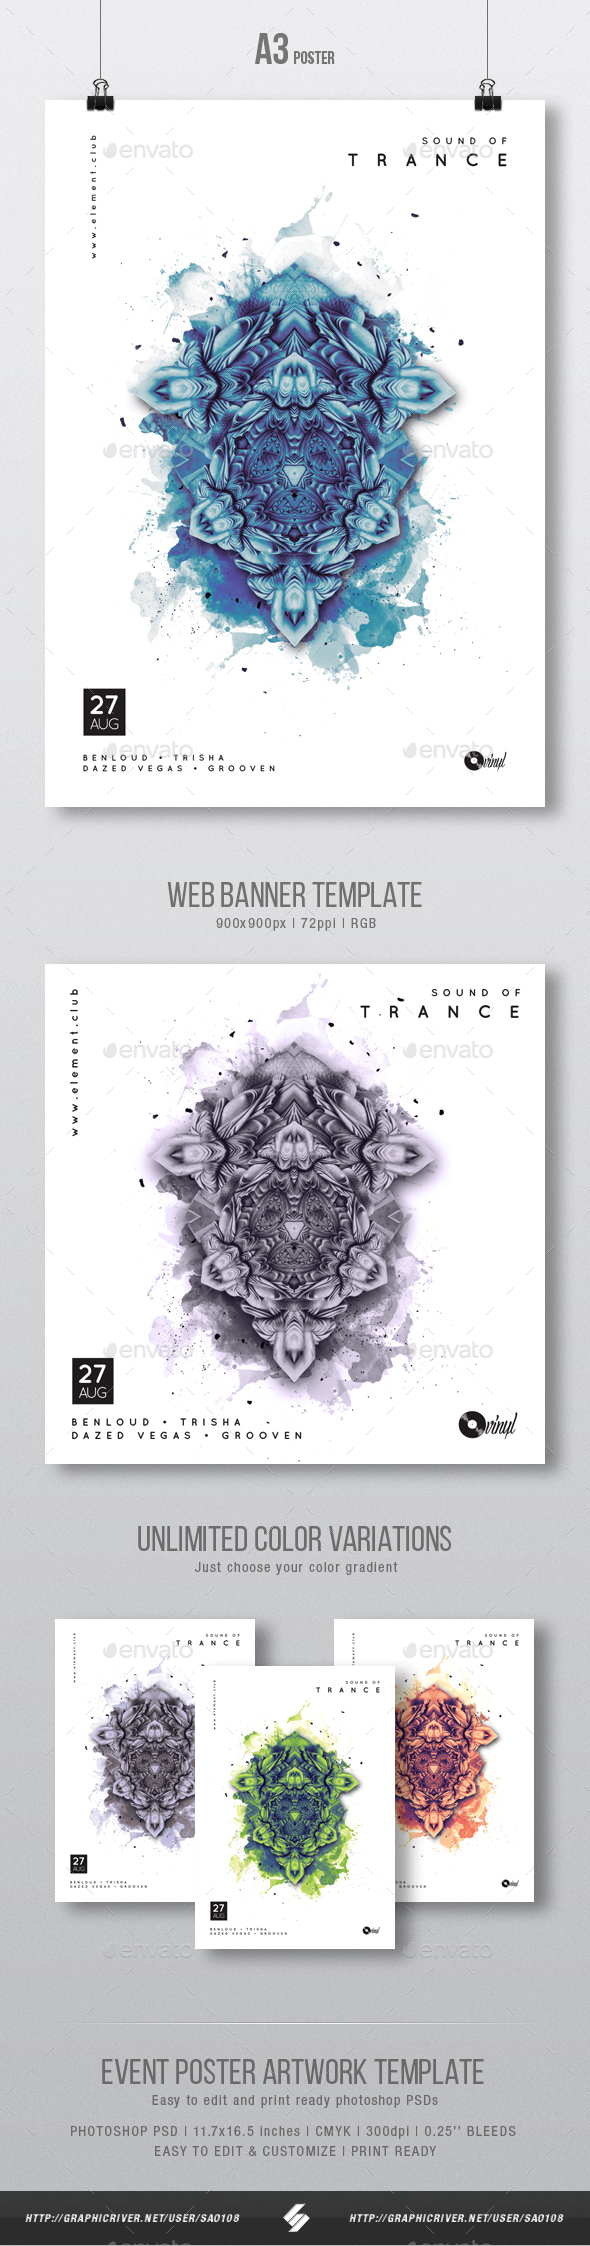 GraphicRiver Sound Of Trance Party Flyer Poster Artwork Template A3 20995688